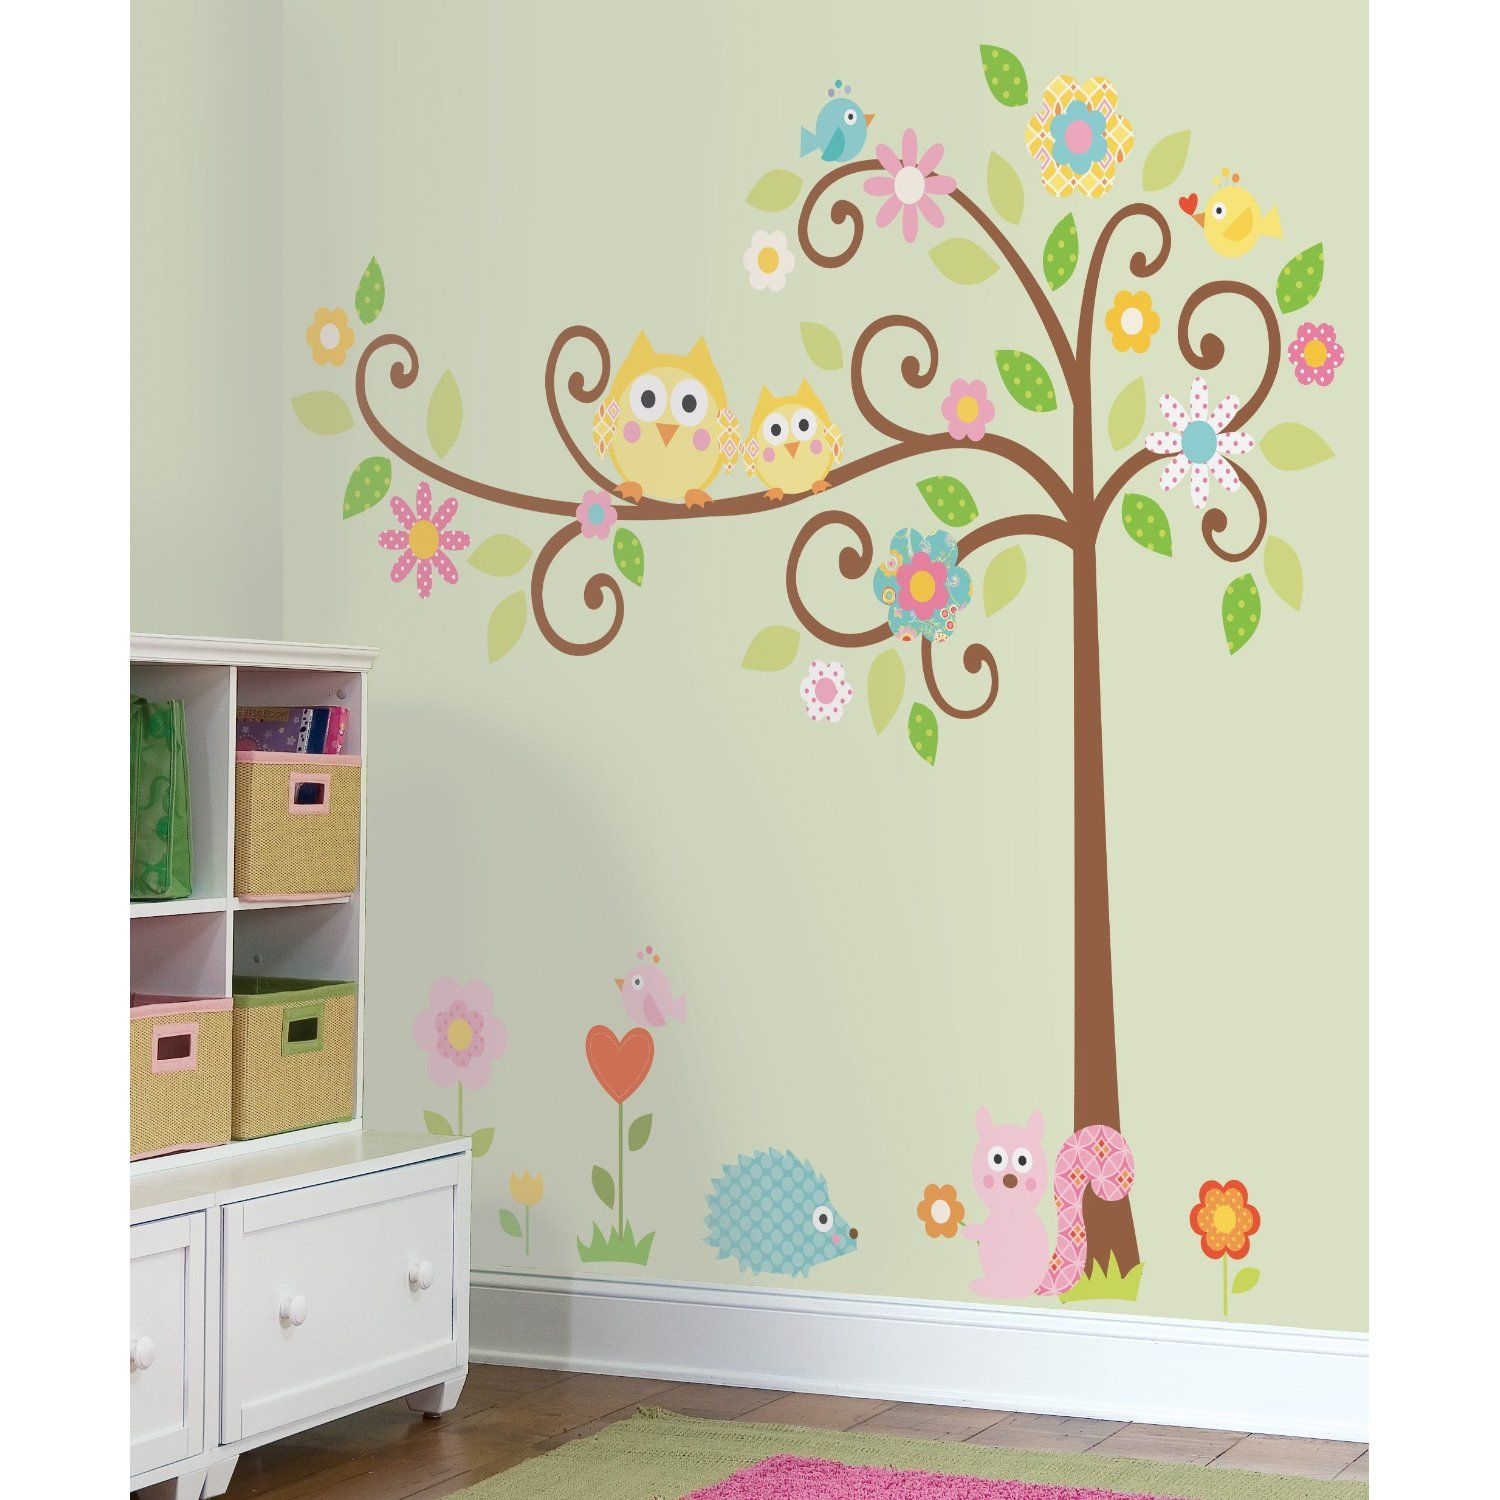 Kids Wall Decals / Stickers Part 18